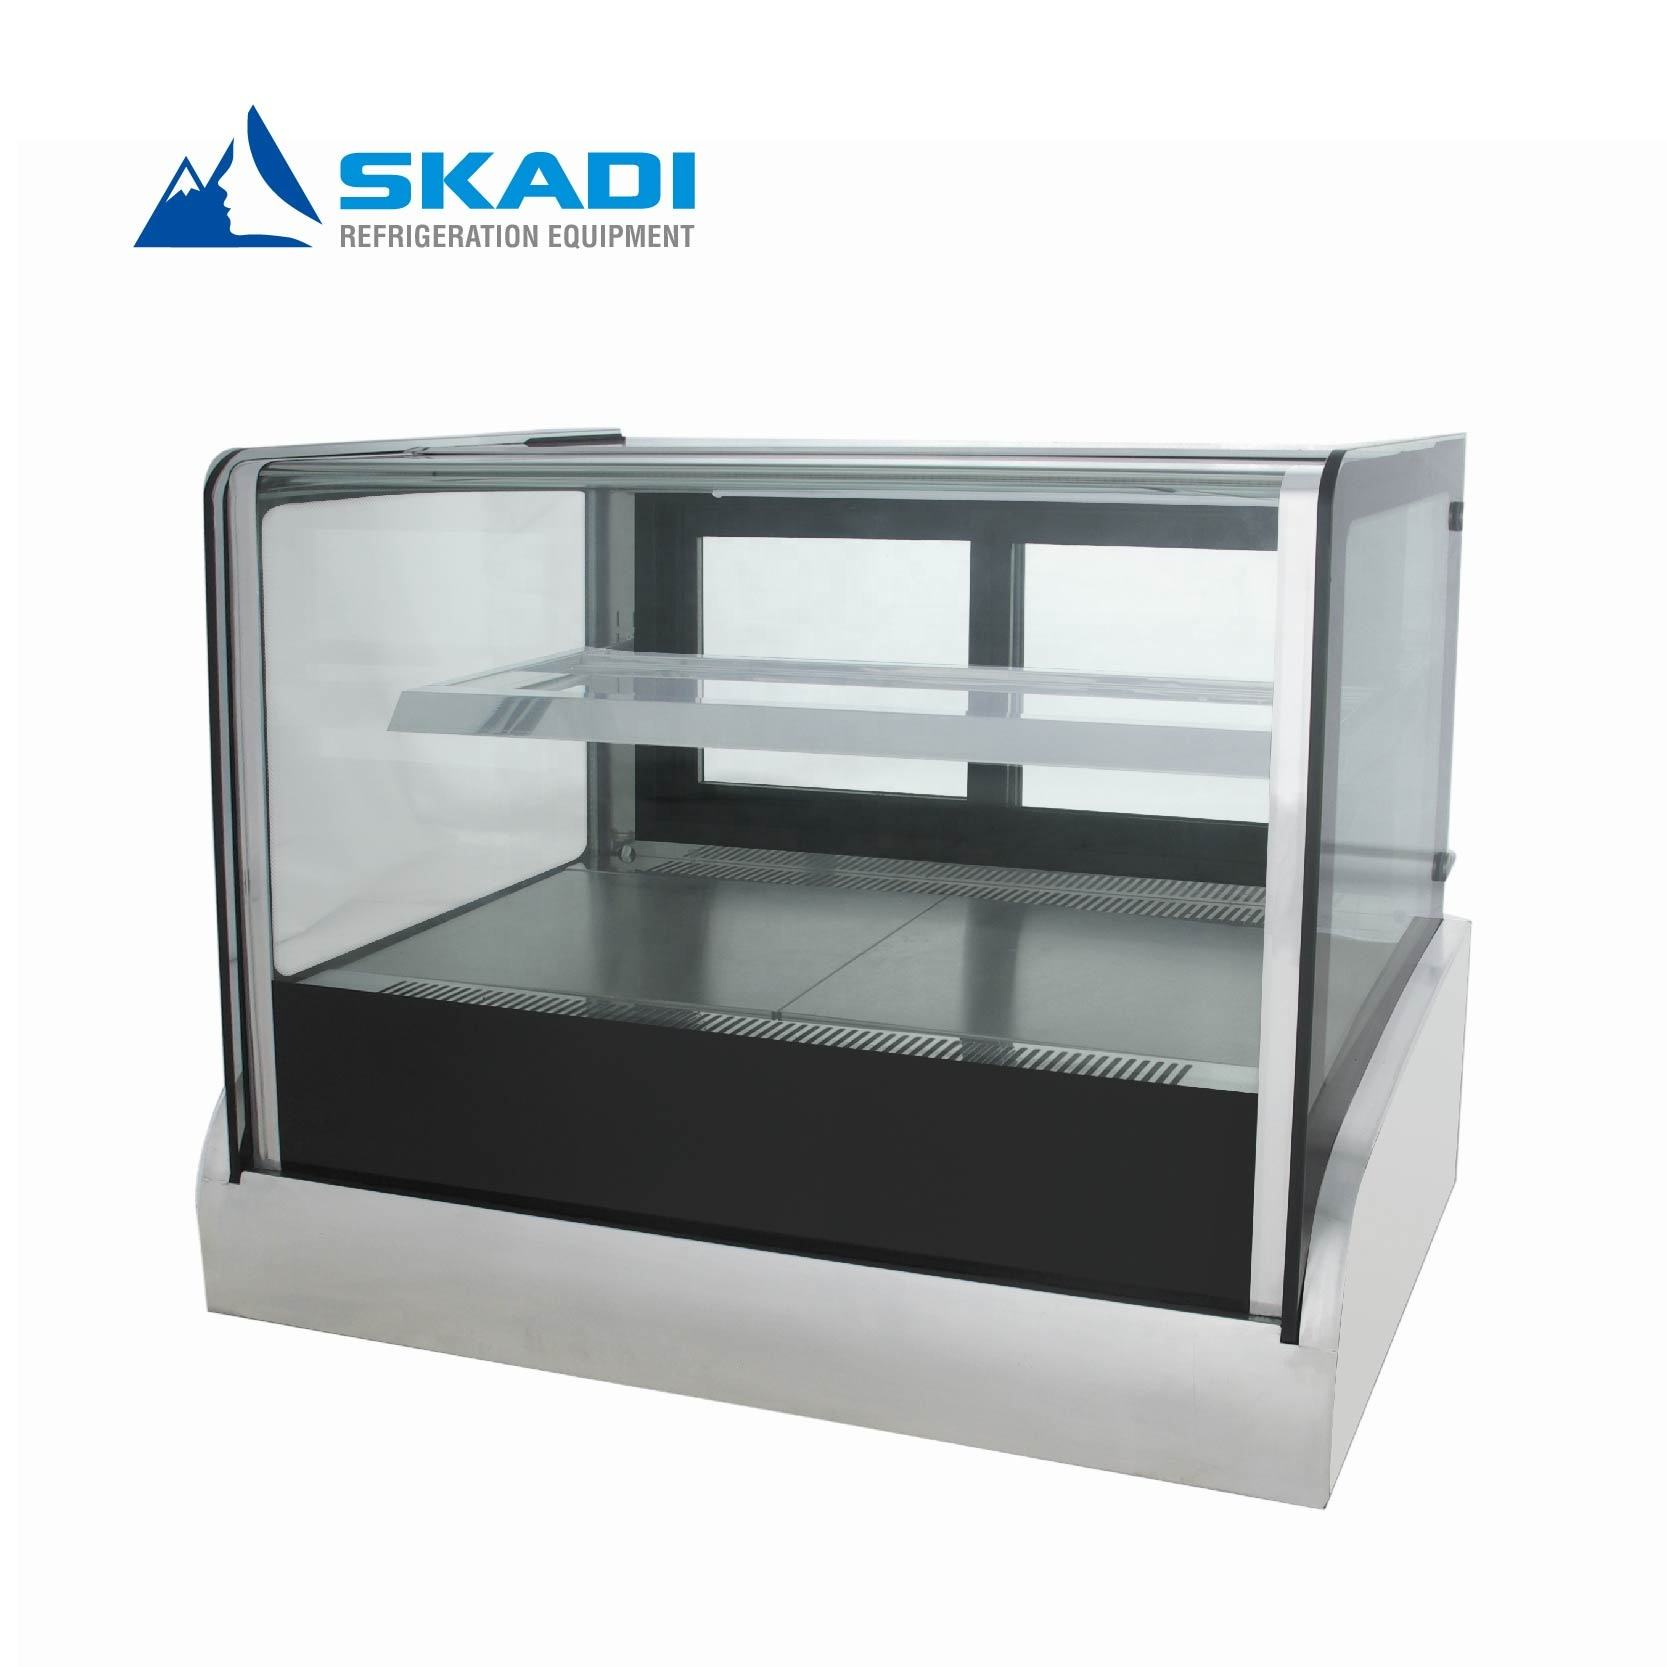 Right angle glass countertop refrigerated display countertop cake display fridge case deli cabinet showcase